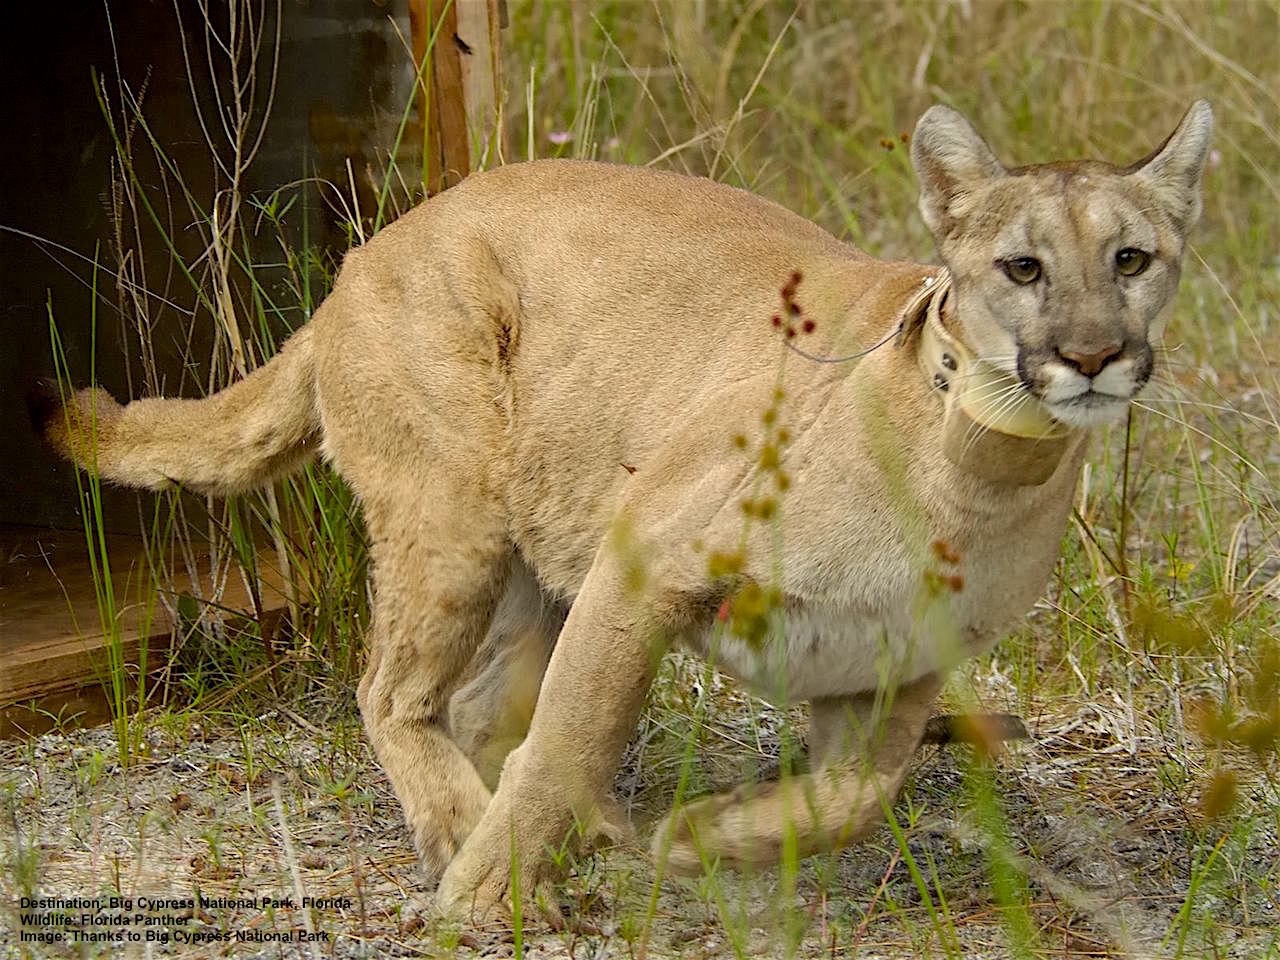 BIG CYPRUS NATIONAL PARK ONE OF THE LAST PLACES ON EARTH TO FIND THE ENDANGERED FLORIDA PANTHER. IMAGE THANKS TO BIG CYPRESS NATIONAL PRESERVE. FROM   THE AMAZING WILDLIFE OF EVERGLADES CITY